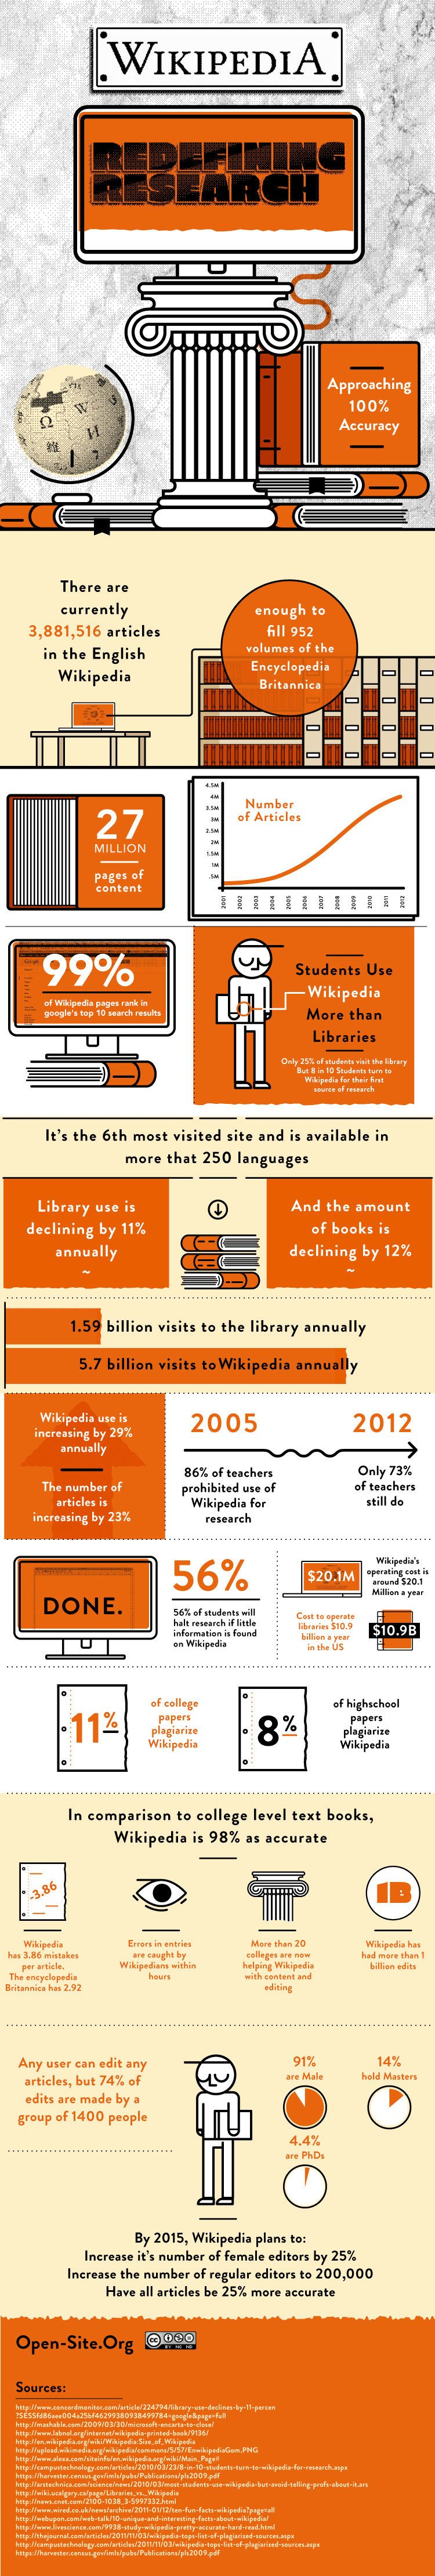 How-Wikipedia-is-Redefining-Research-Infographic